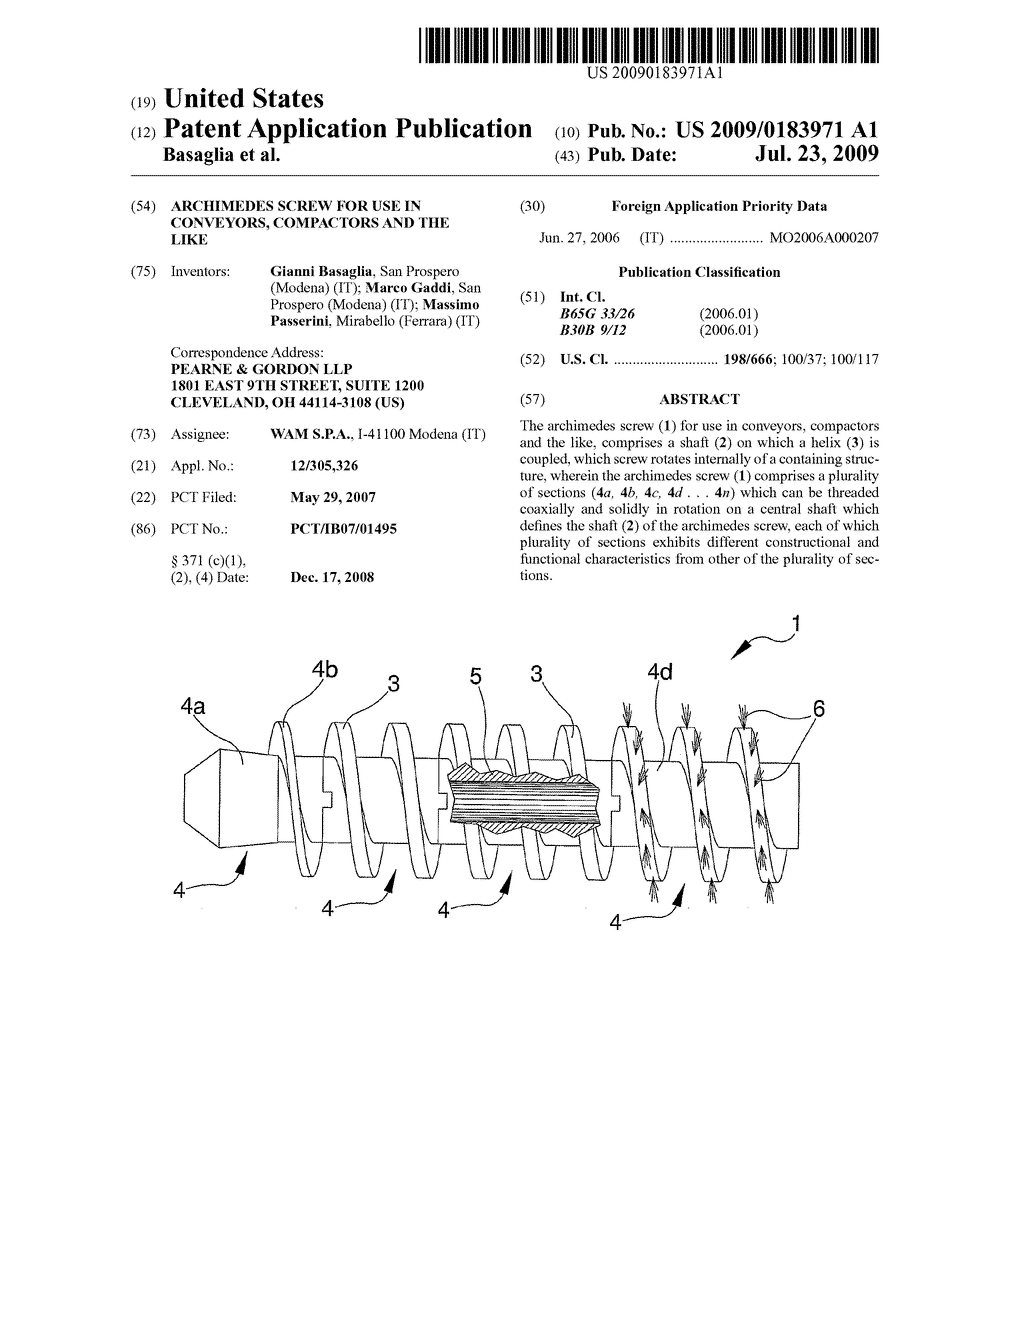 Archimedes Screw For Use In Conveyors Compactors And The Like Compactor Wiring Diagram Schematic Image 01